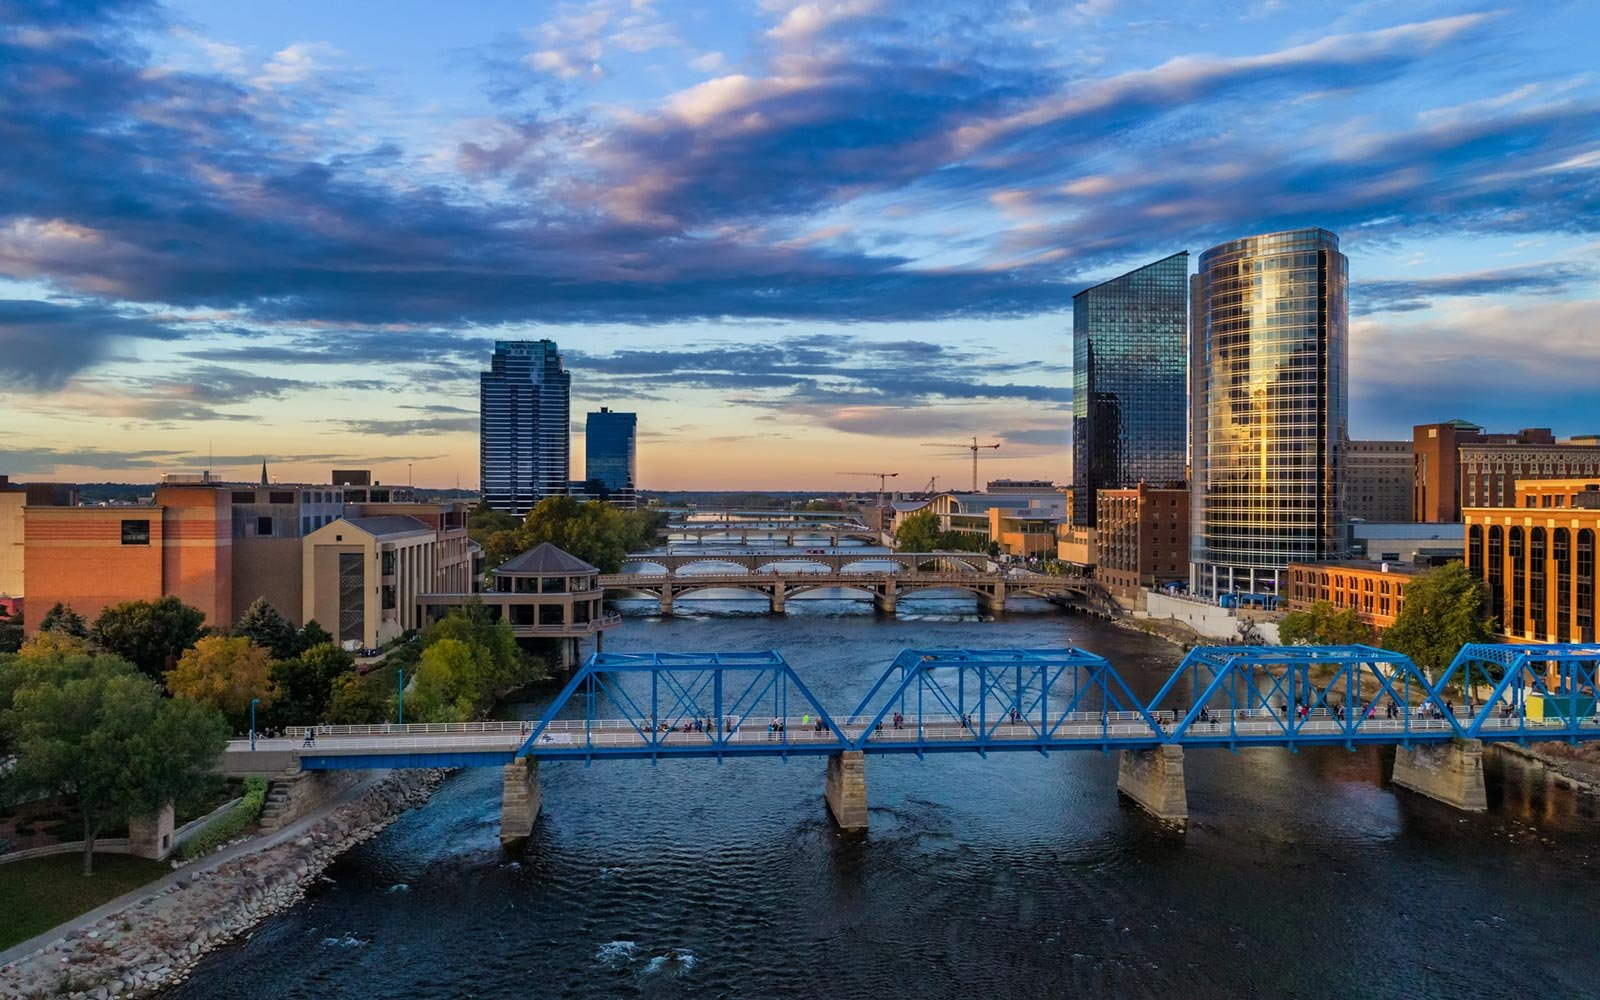 10. Grand Rapids, Michigan